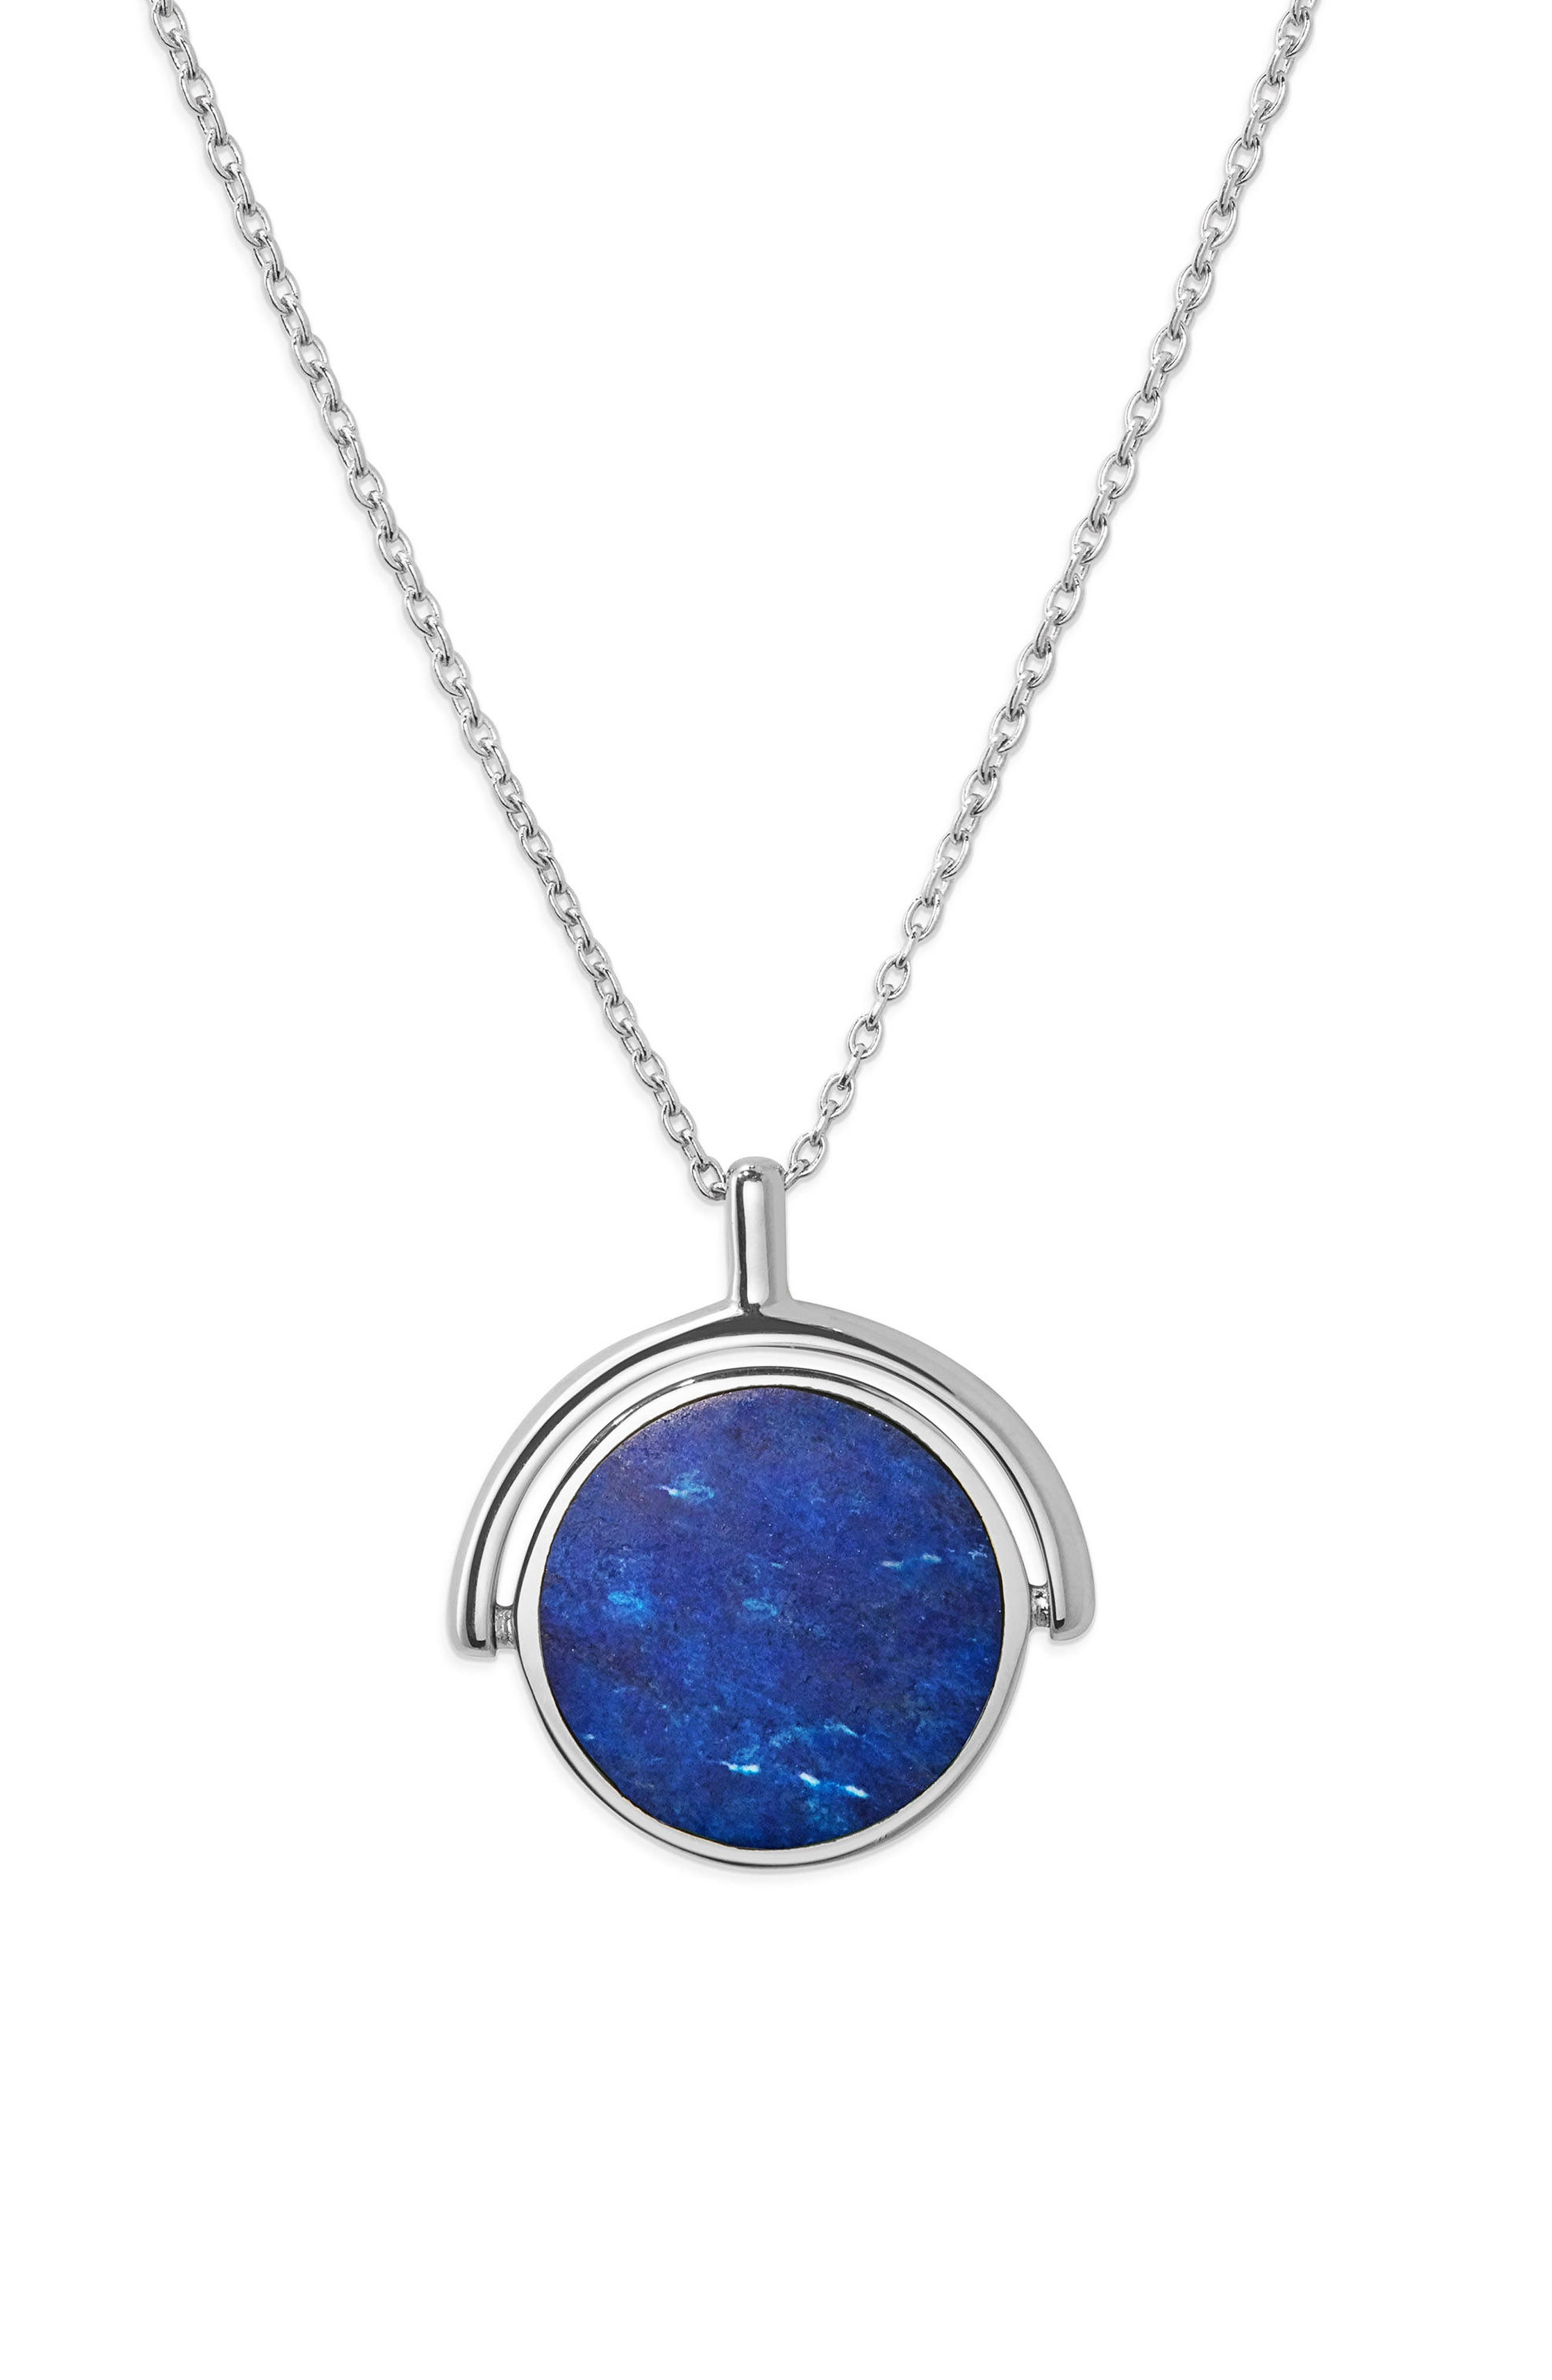 Rotating Signet Pendant Necklace,                         Main,                         color, Sterling Silver/ Lapis